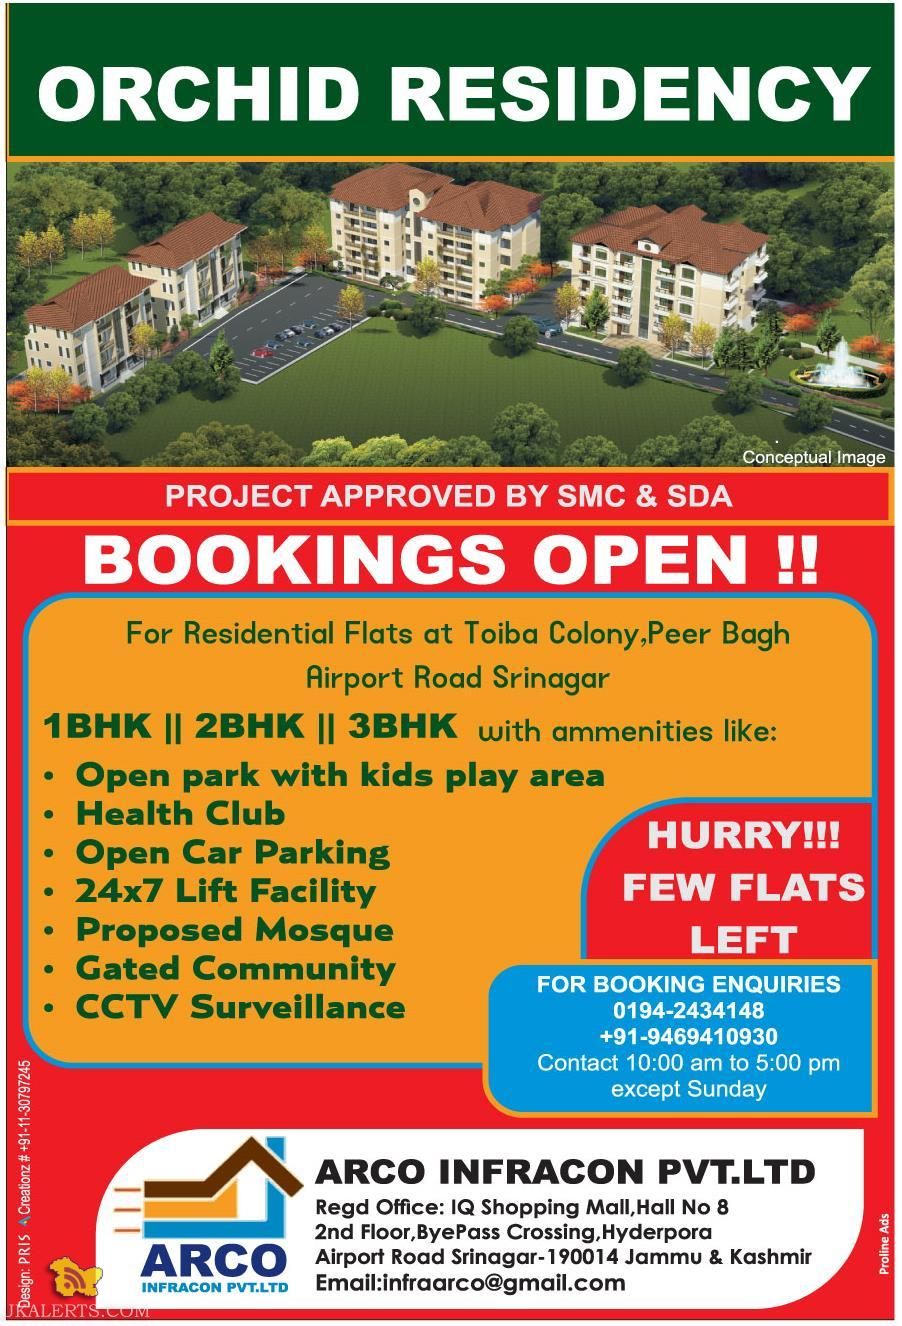 ORCHID RESIDENCY BOOKINGS OPEN !!